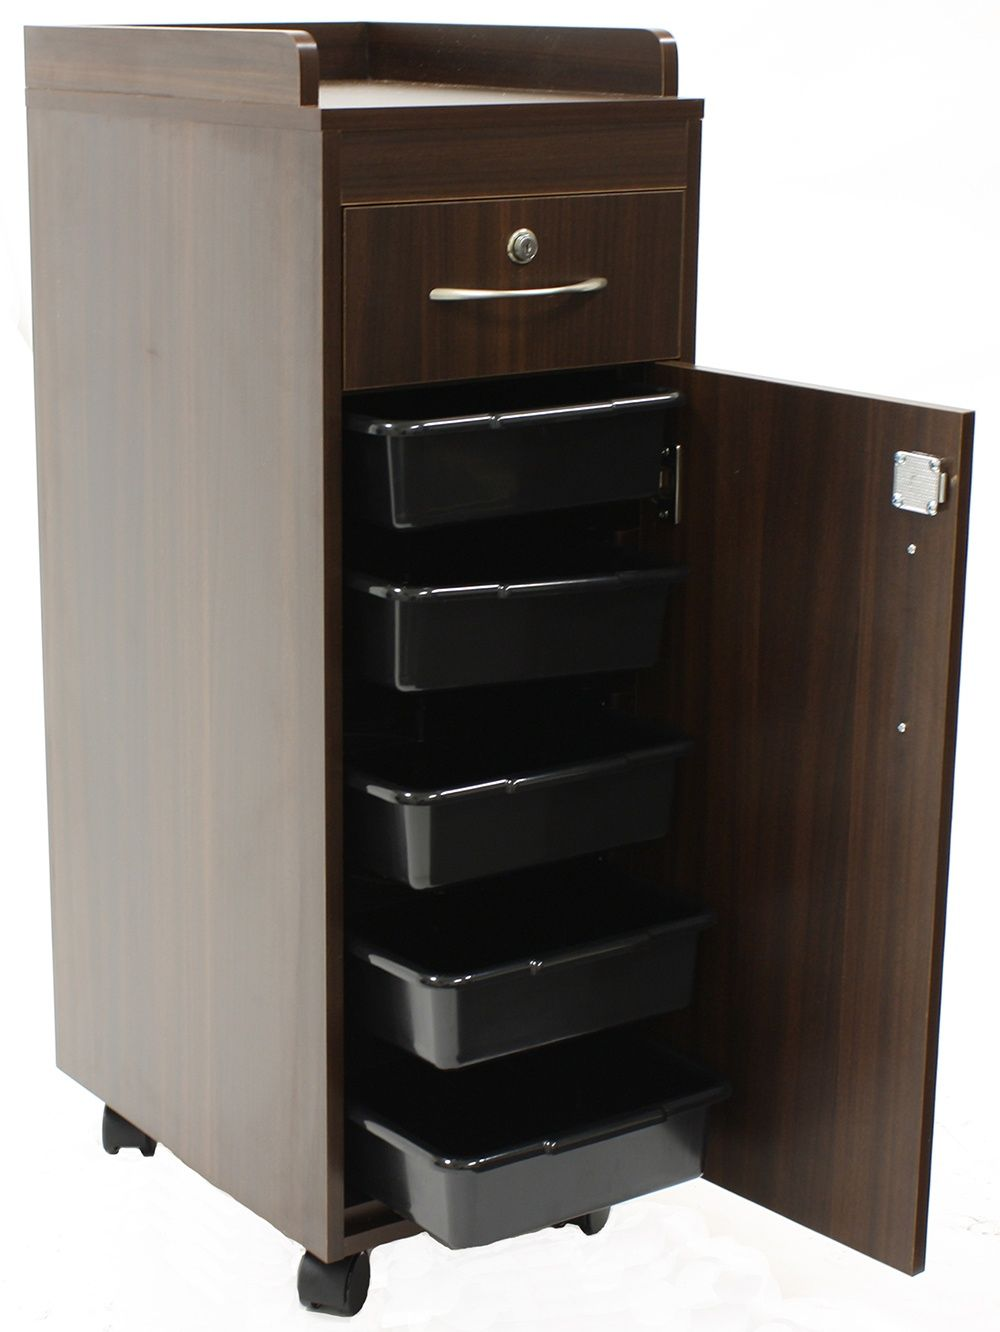 Cc 2768 Mobile Storage Cabinets And Trolleys For Your Hair Nail